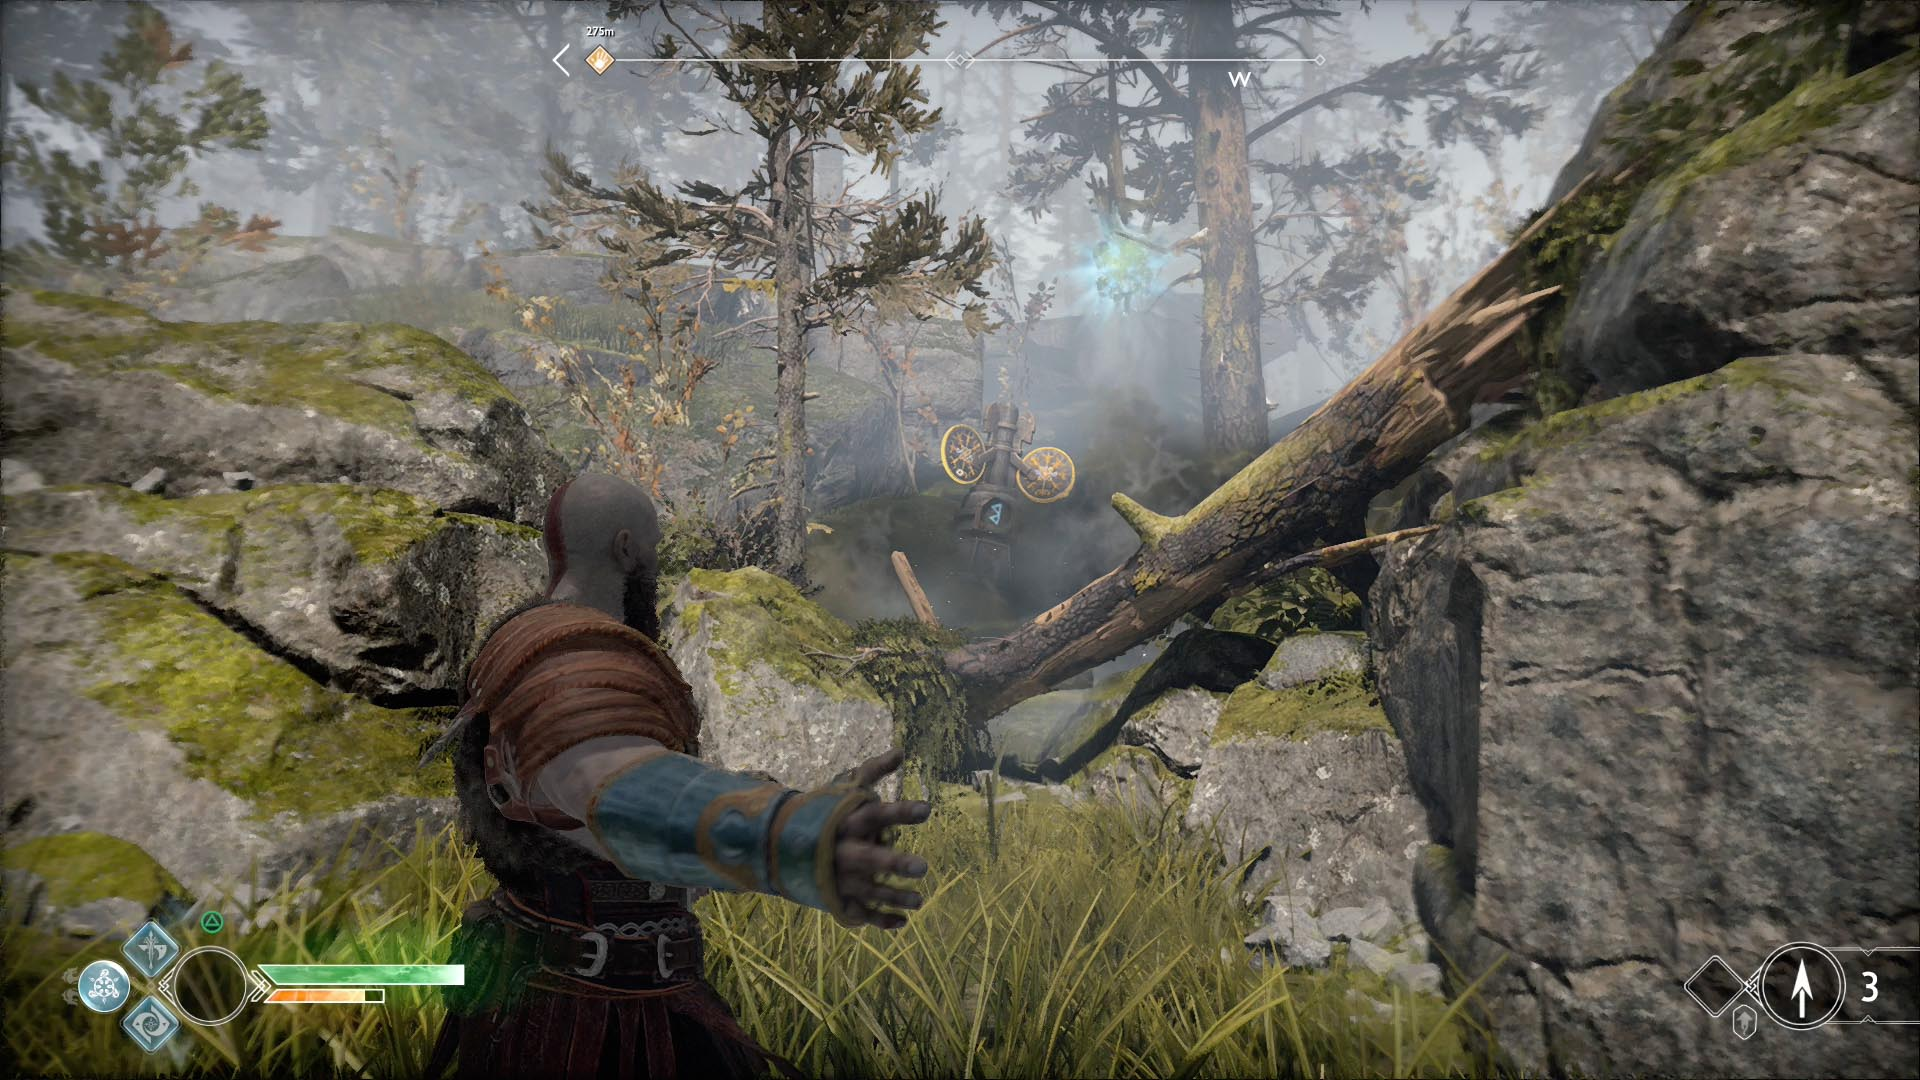 God of War guide: Foothills and Mountain's Base walkthrough and